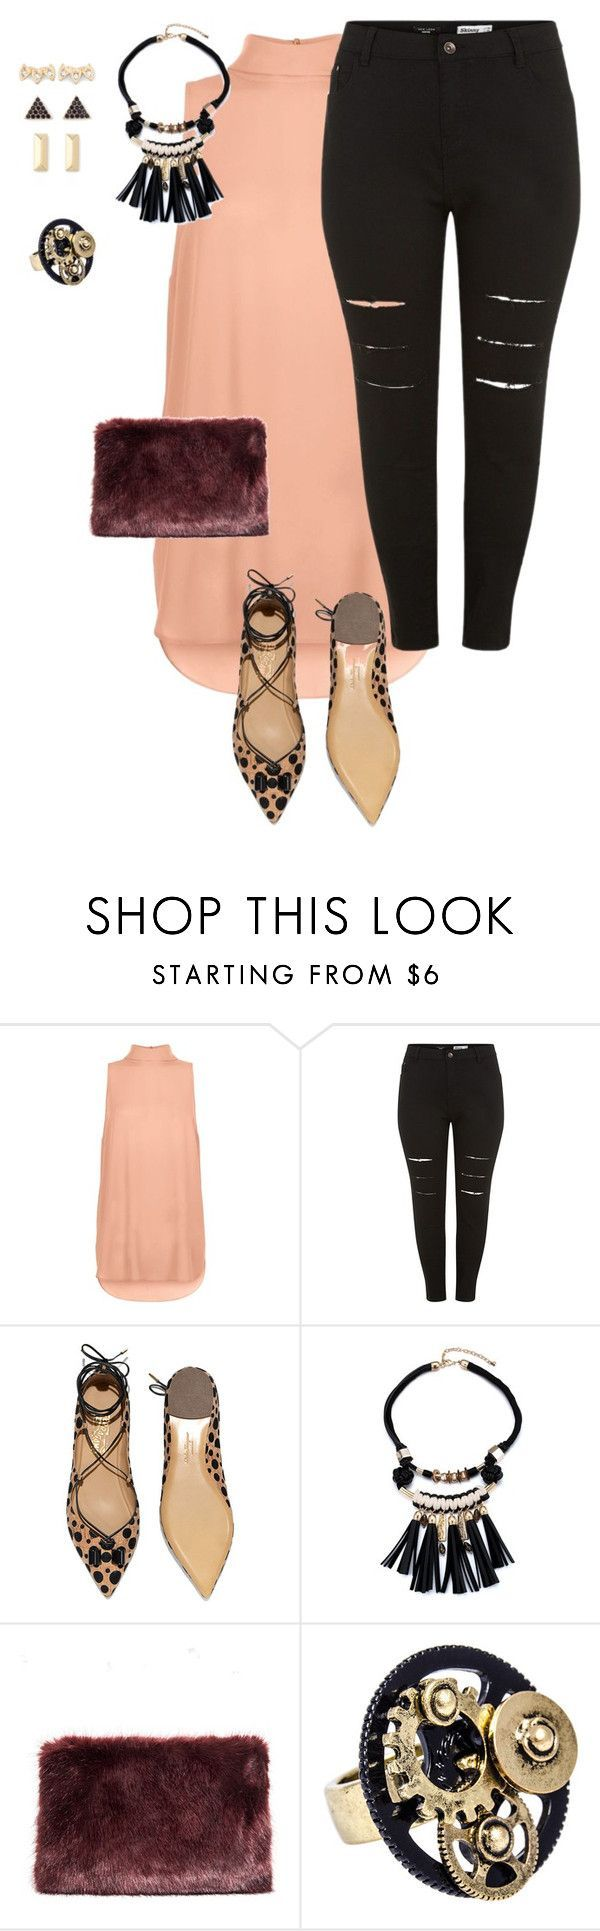 """""""plus size simple and pretty night out"""" by kristie-payne ❤ liked on Polyvore featuring Salvatore Ferragamo, Stella & Dot, women's clothing, women, female, woman, misses and juniors"""